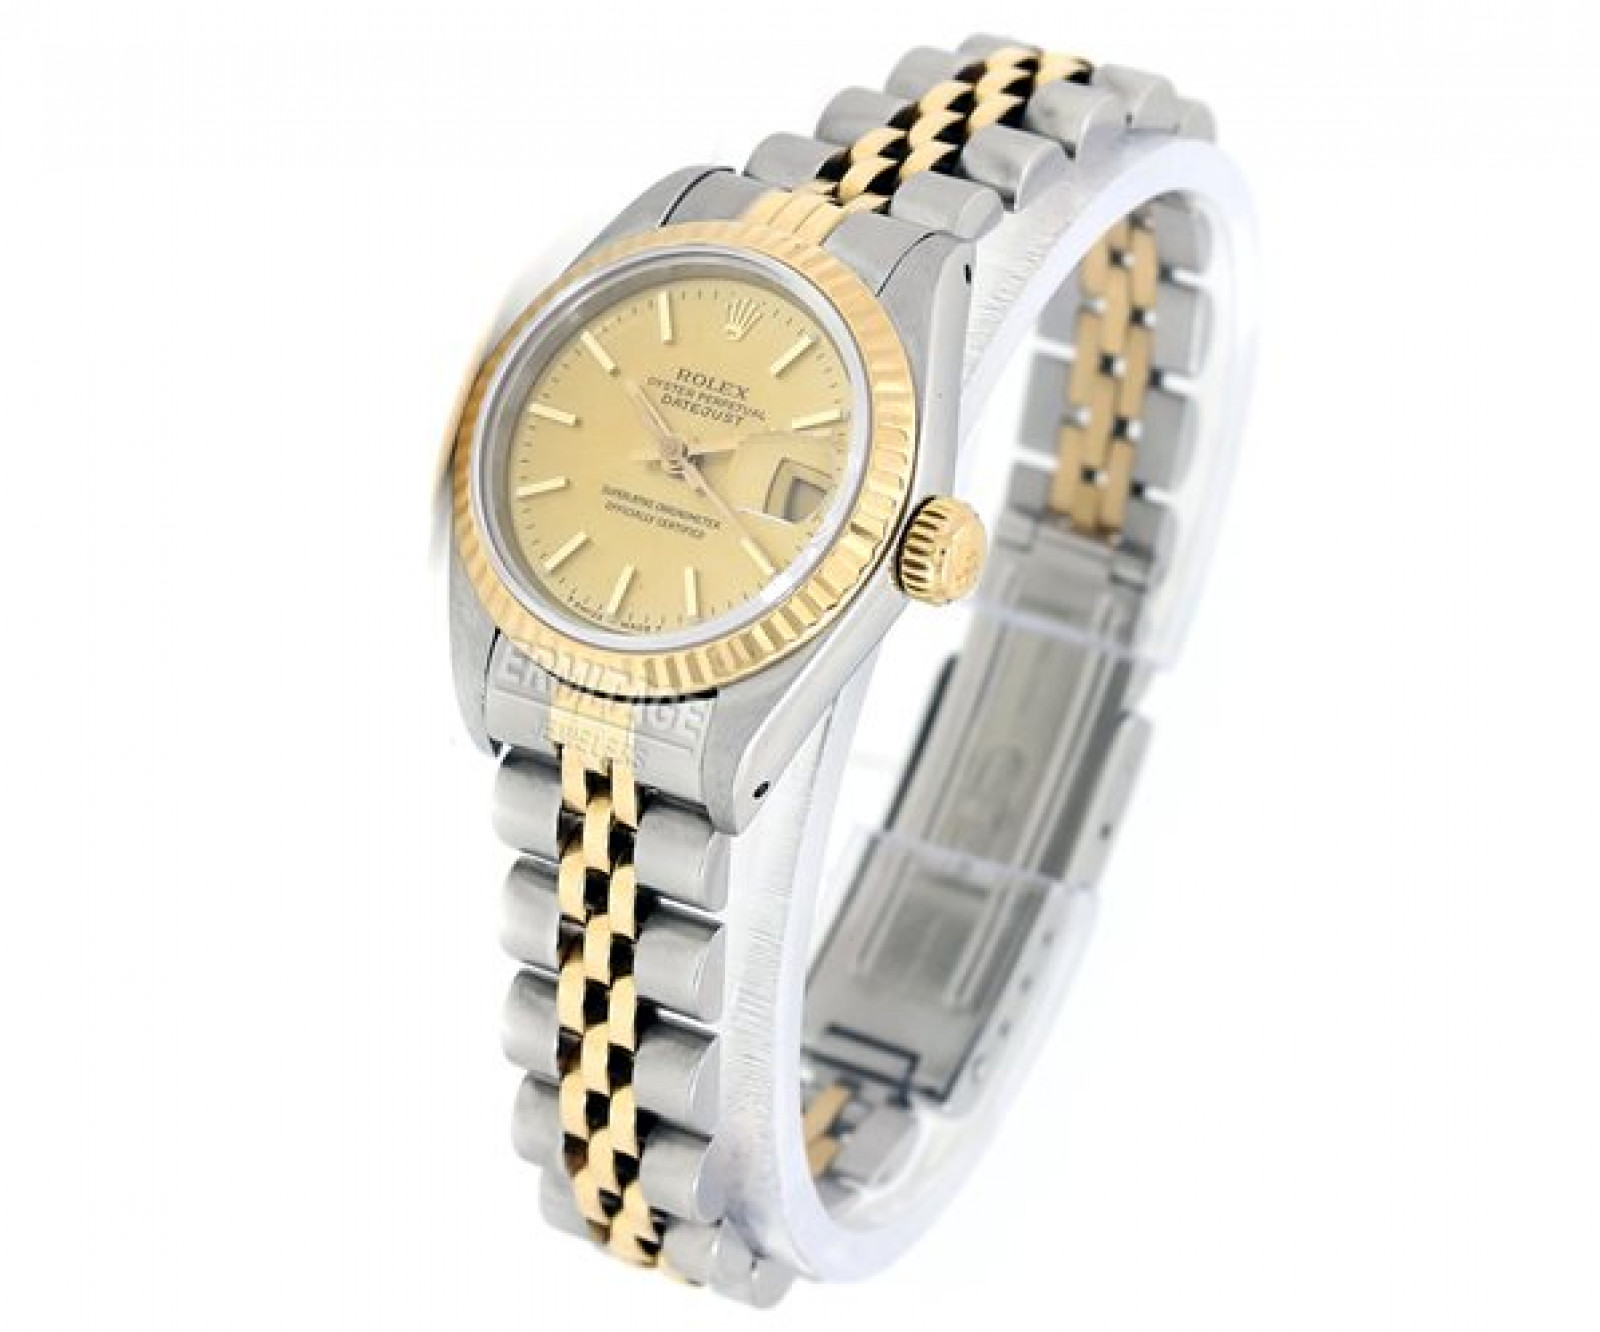 Pre-Owned Gold & Steel Rolex Datejust 69173 Year 1984